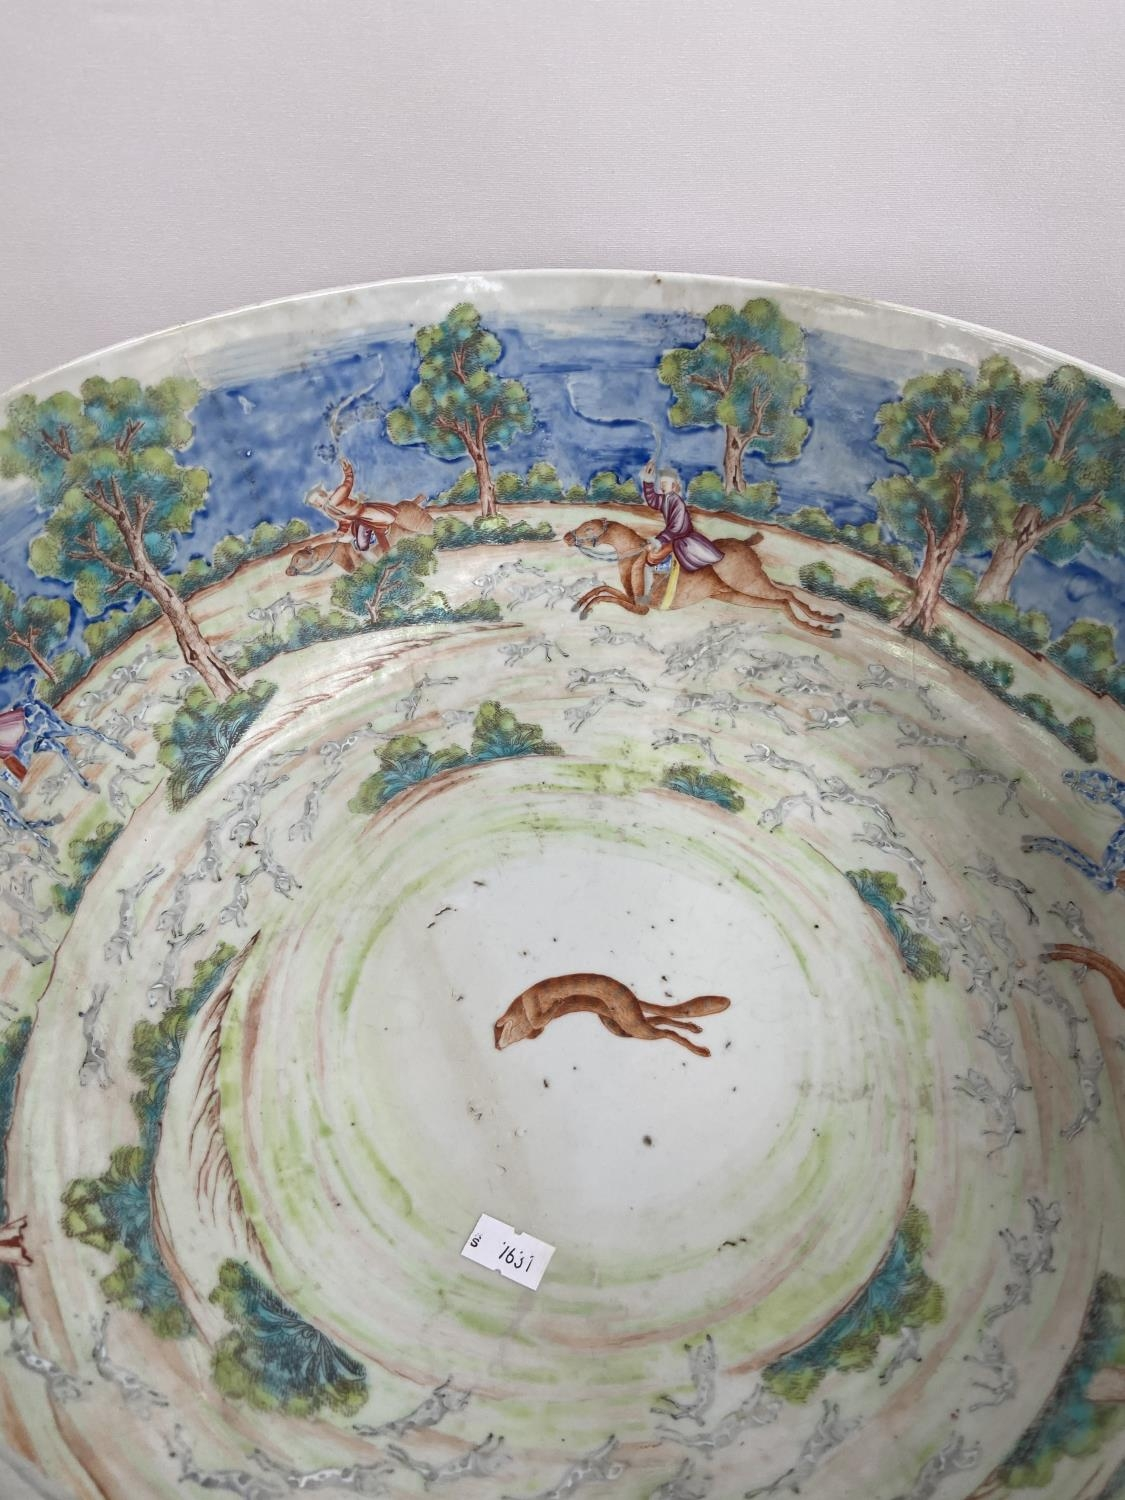 A LARGE 19TH CENTURY CHINESE HAND PAINTED BOWL. EXTERIOR DEPICTS CHINESE HUNTING SCENE PANELS. THE - Image 18 of 39